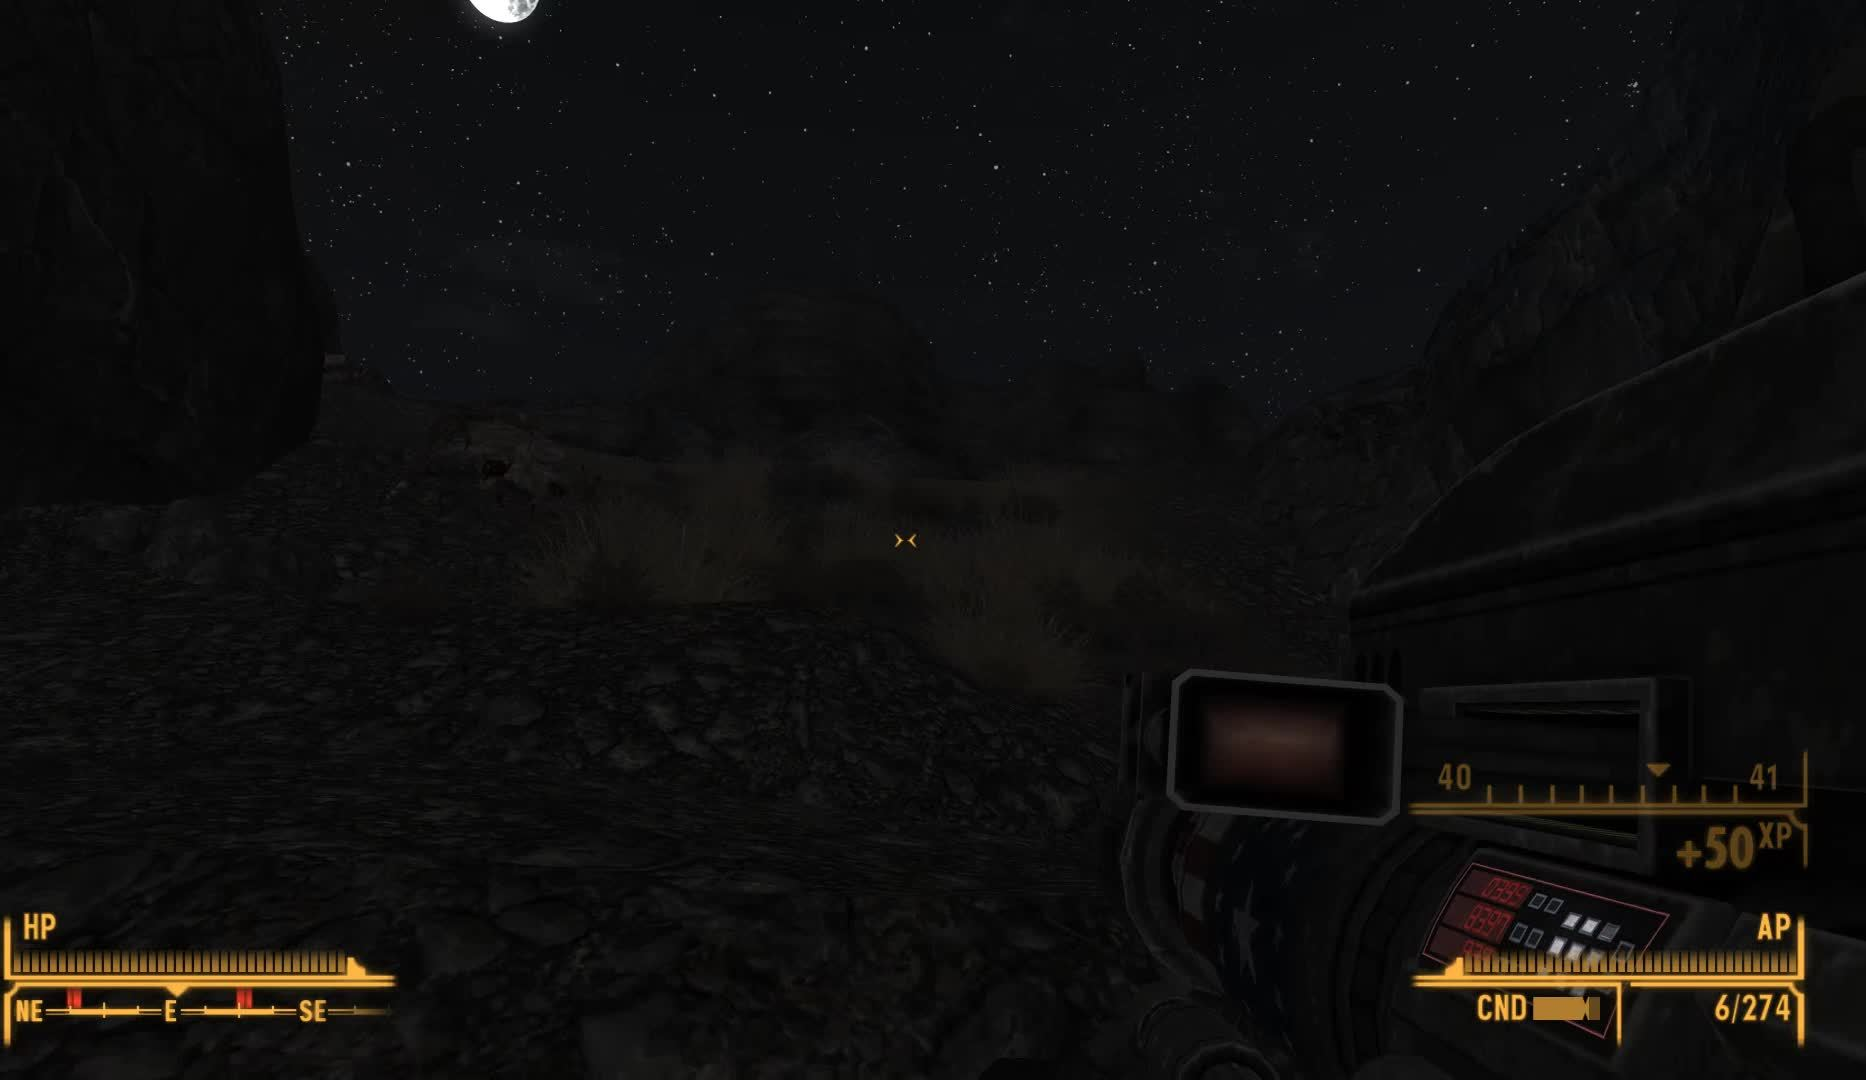 fnv, Entering Deathclaw Promontory at Night Rarely Ends Well (reddit) GIFs